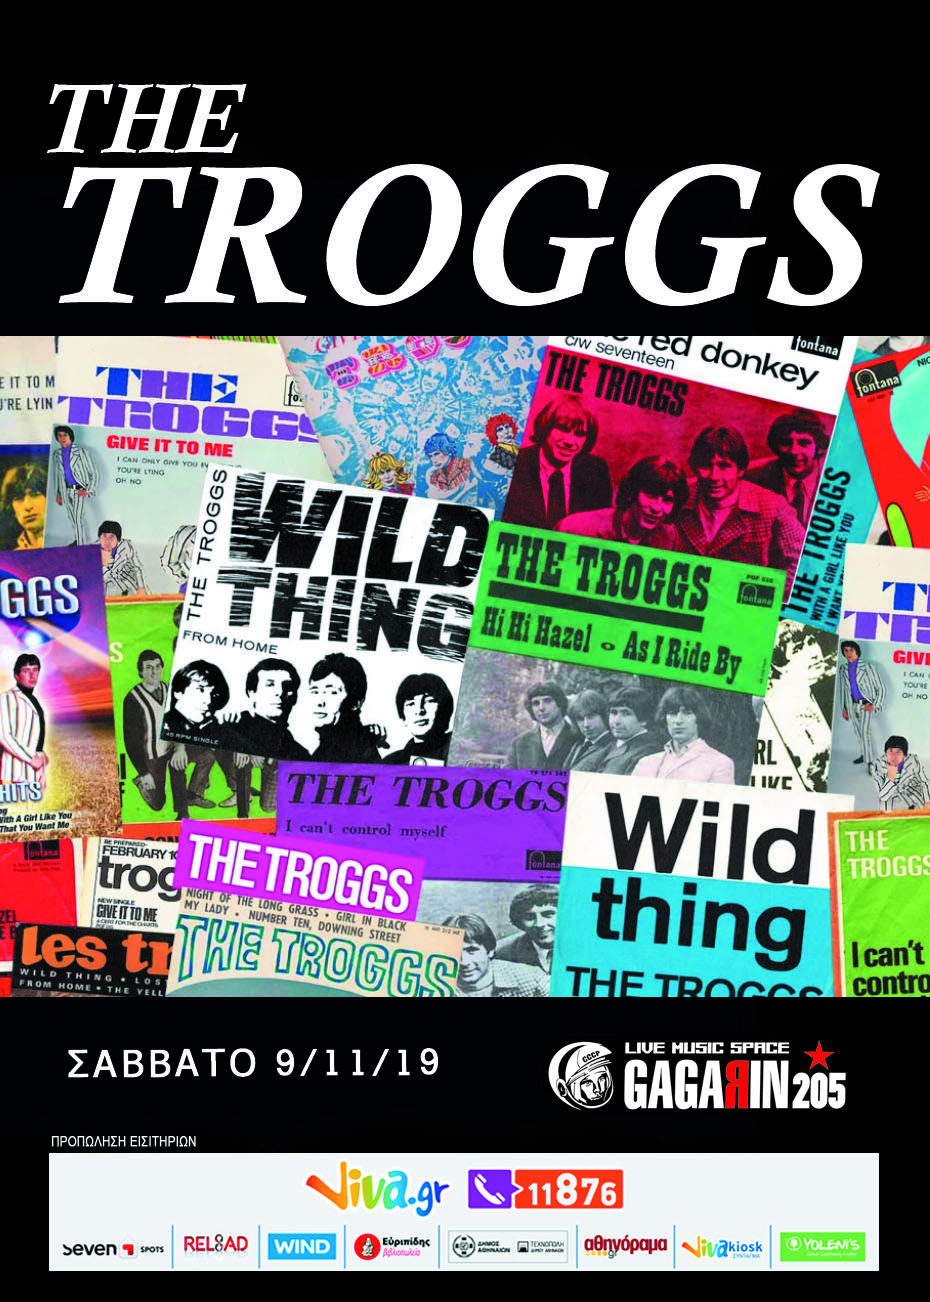 THE TROGGS - POSTER